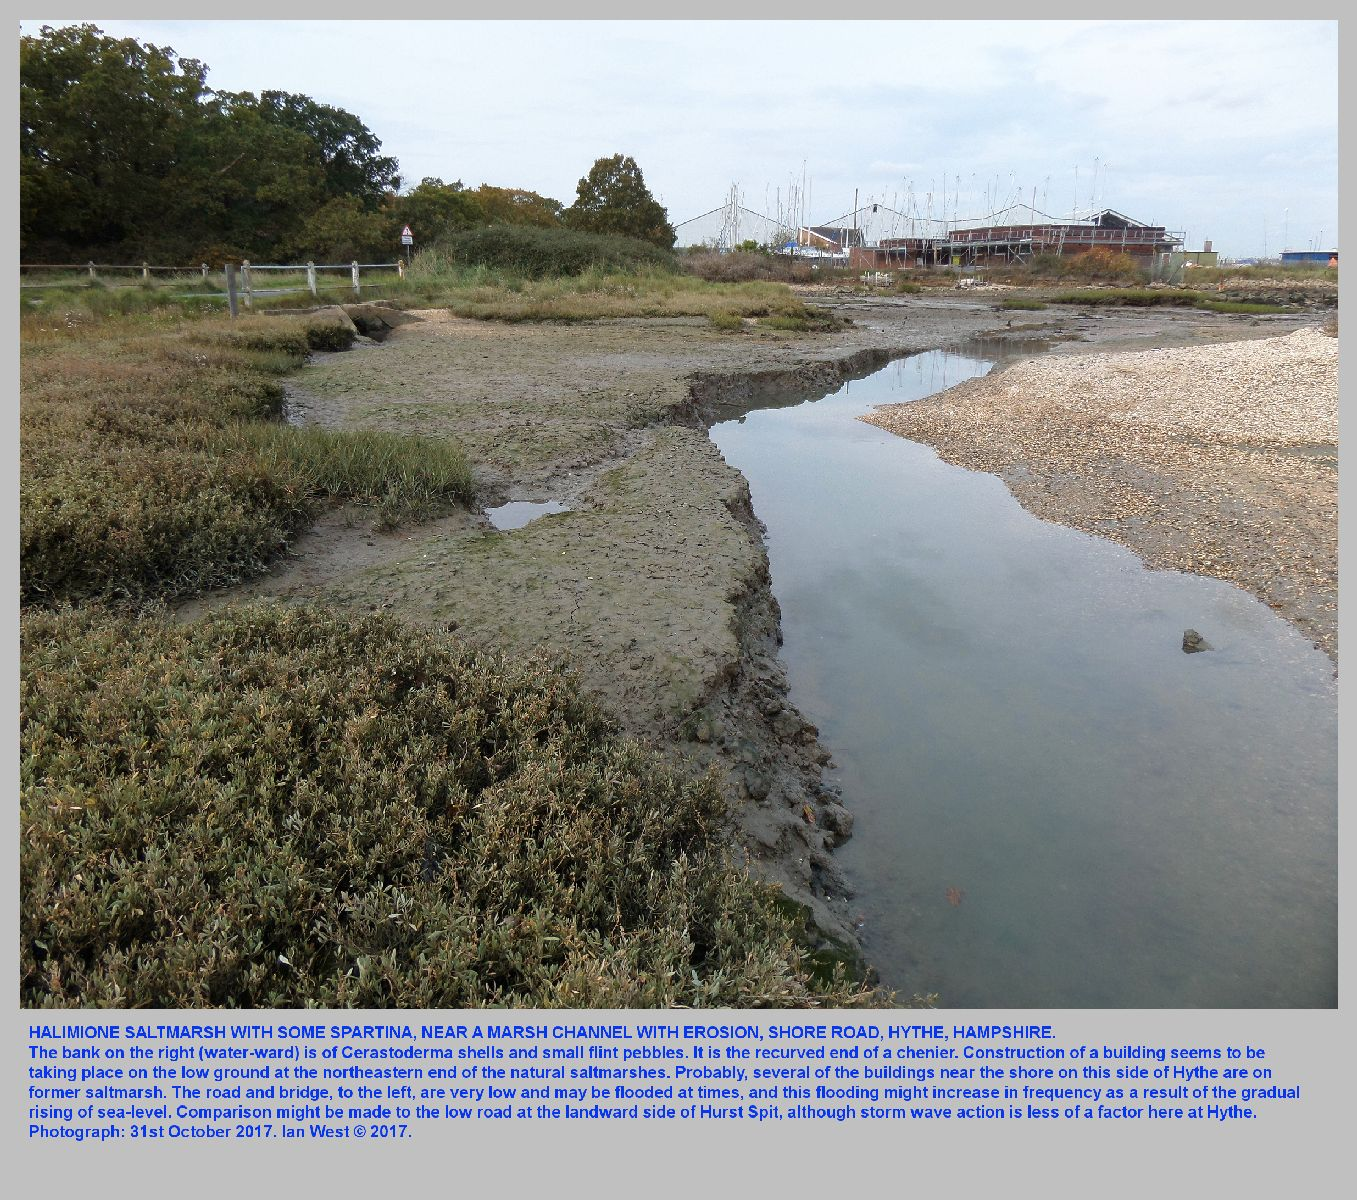 Halimione saltmarshes and with some Spartina, near the bridge at the Hythe saltmarshes, Hampshire, 31st October 2017